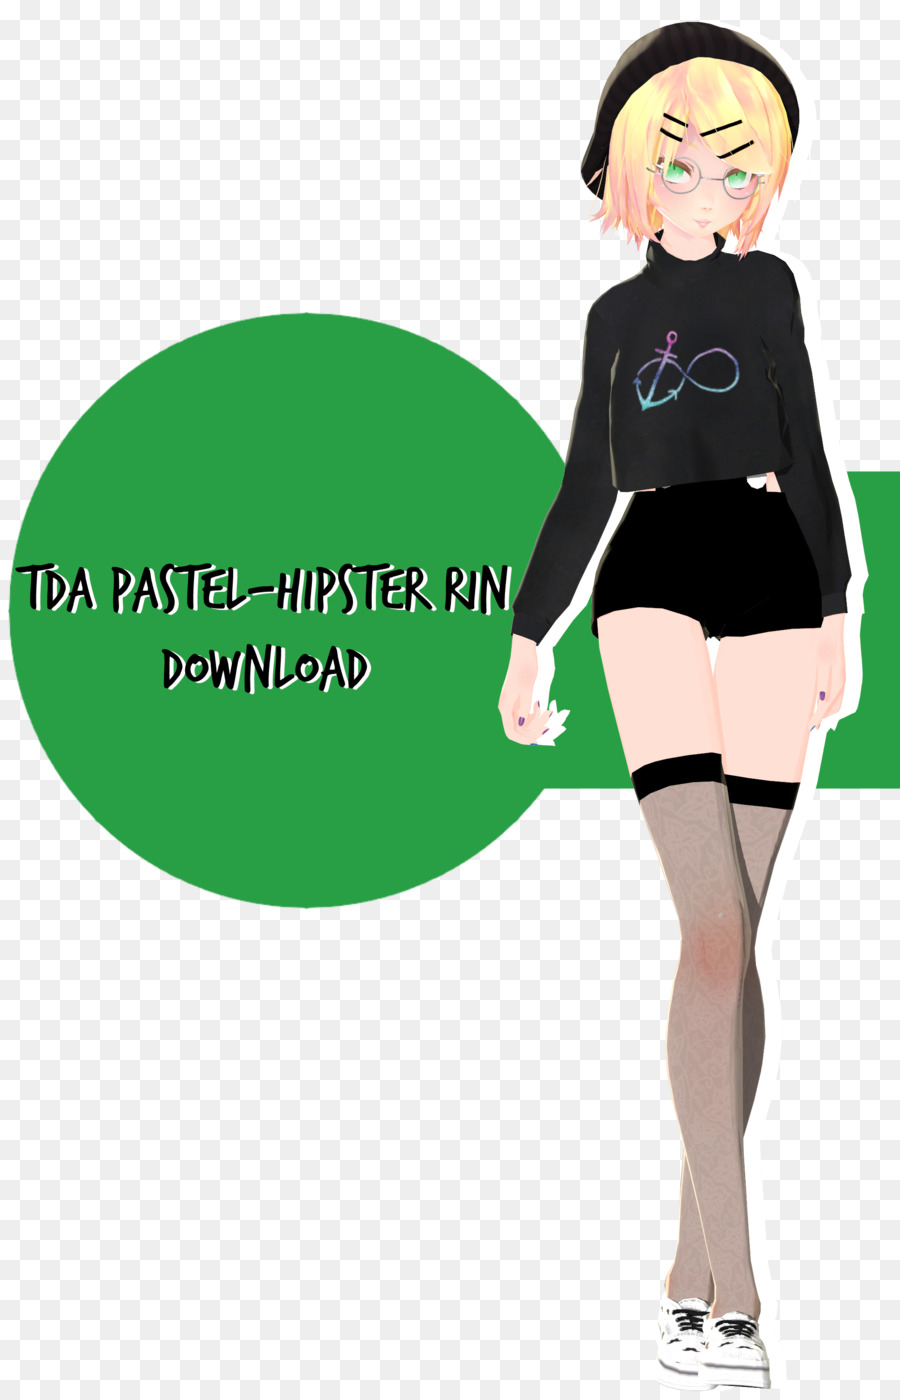 Child Background clipart - Hipster, Clothing, Cartoon